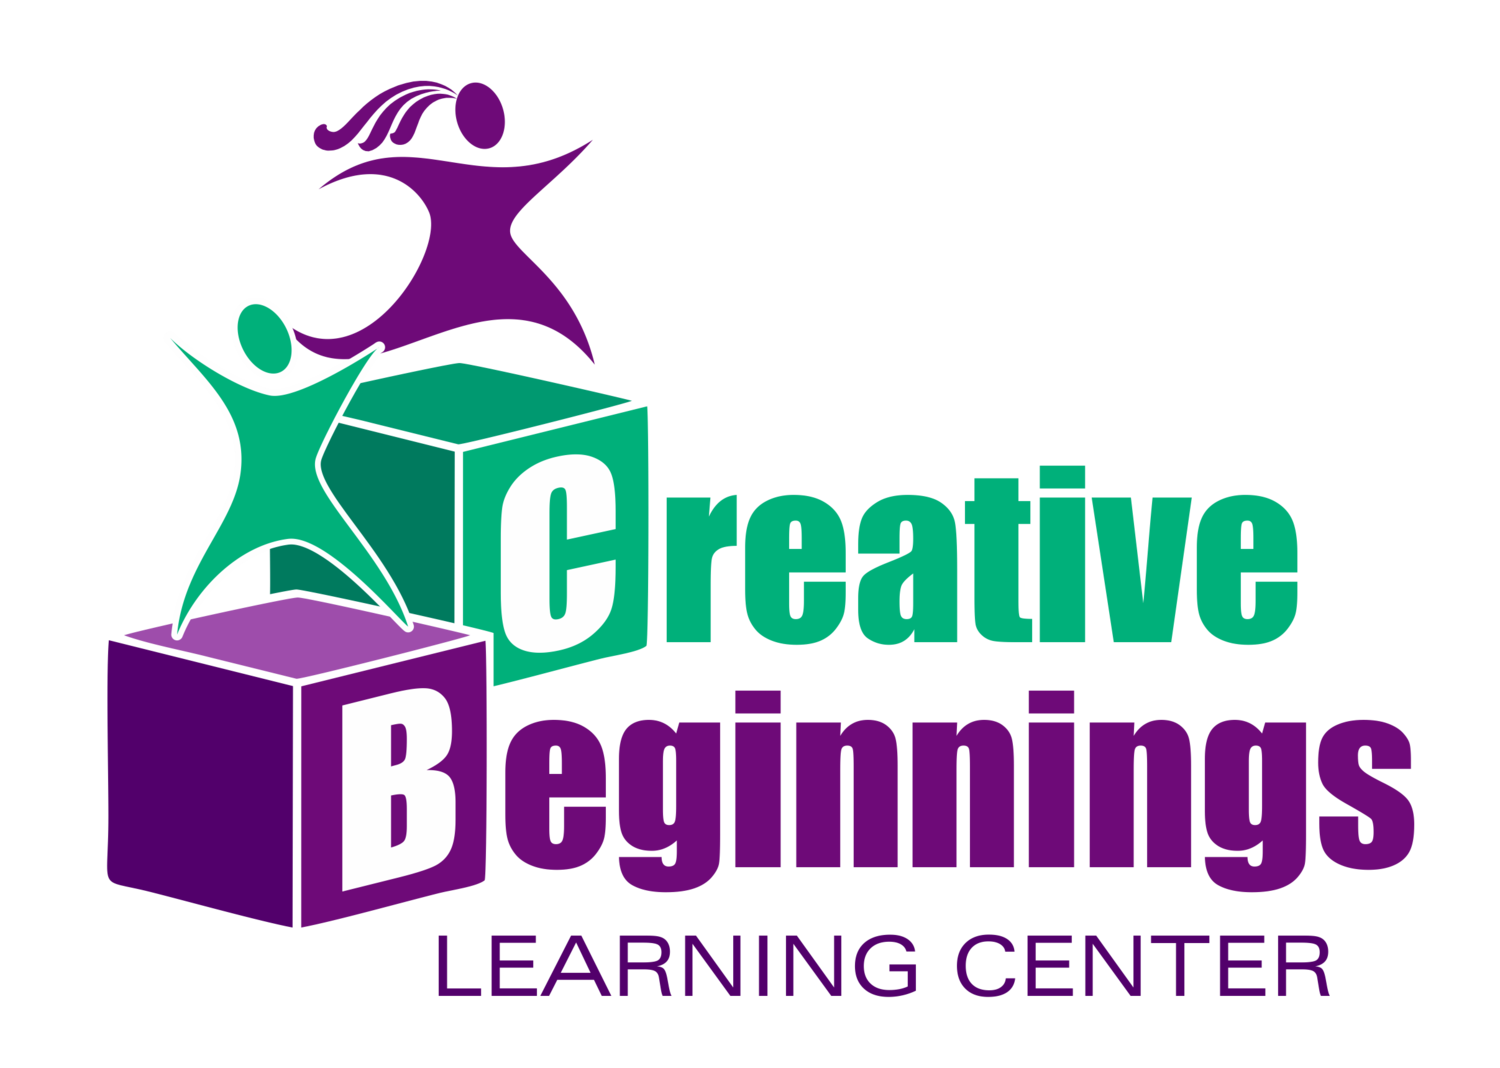 February clipart presidents day. Creative beginnings learning center